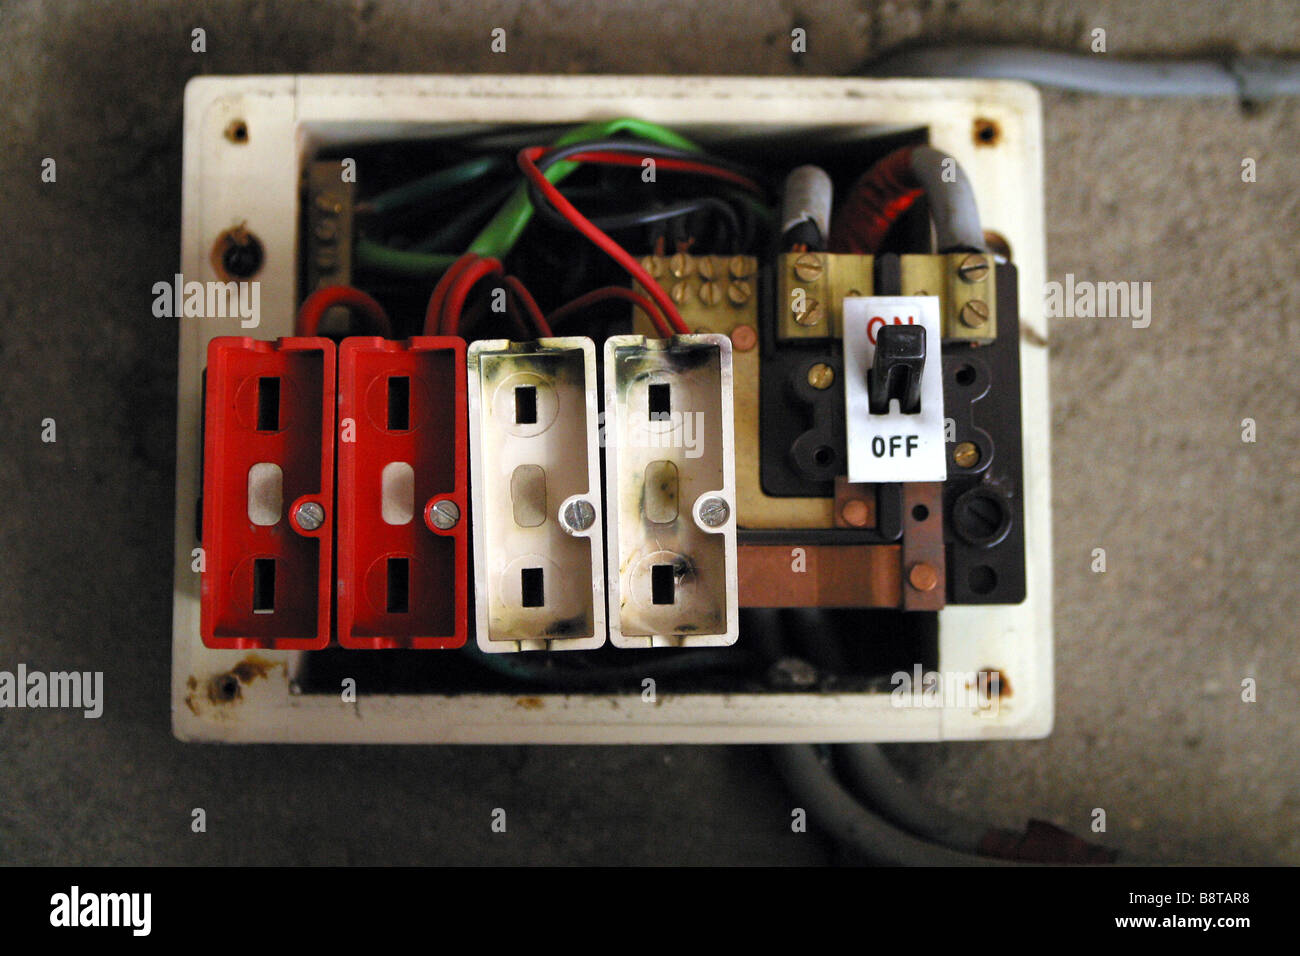 medium resolution of old fuse box wiring wiring diagram fascinatingtoyota old fuse box wiring diagram home new fuse box